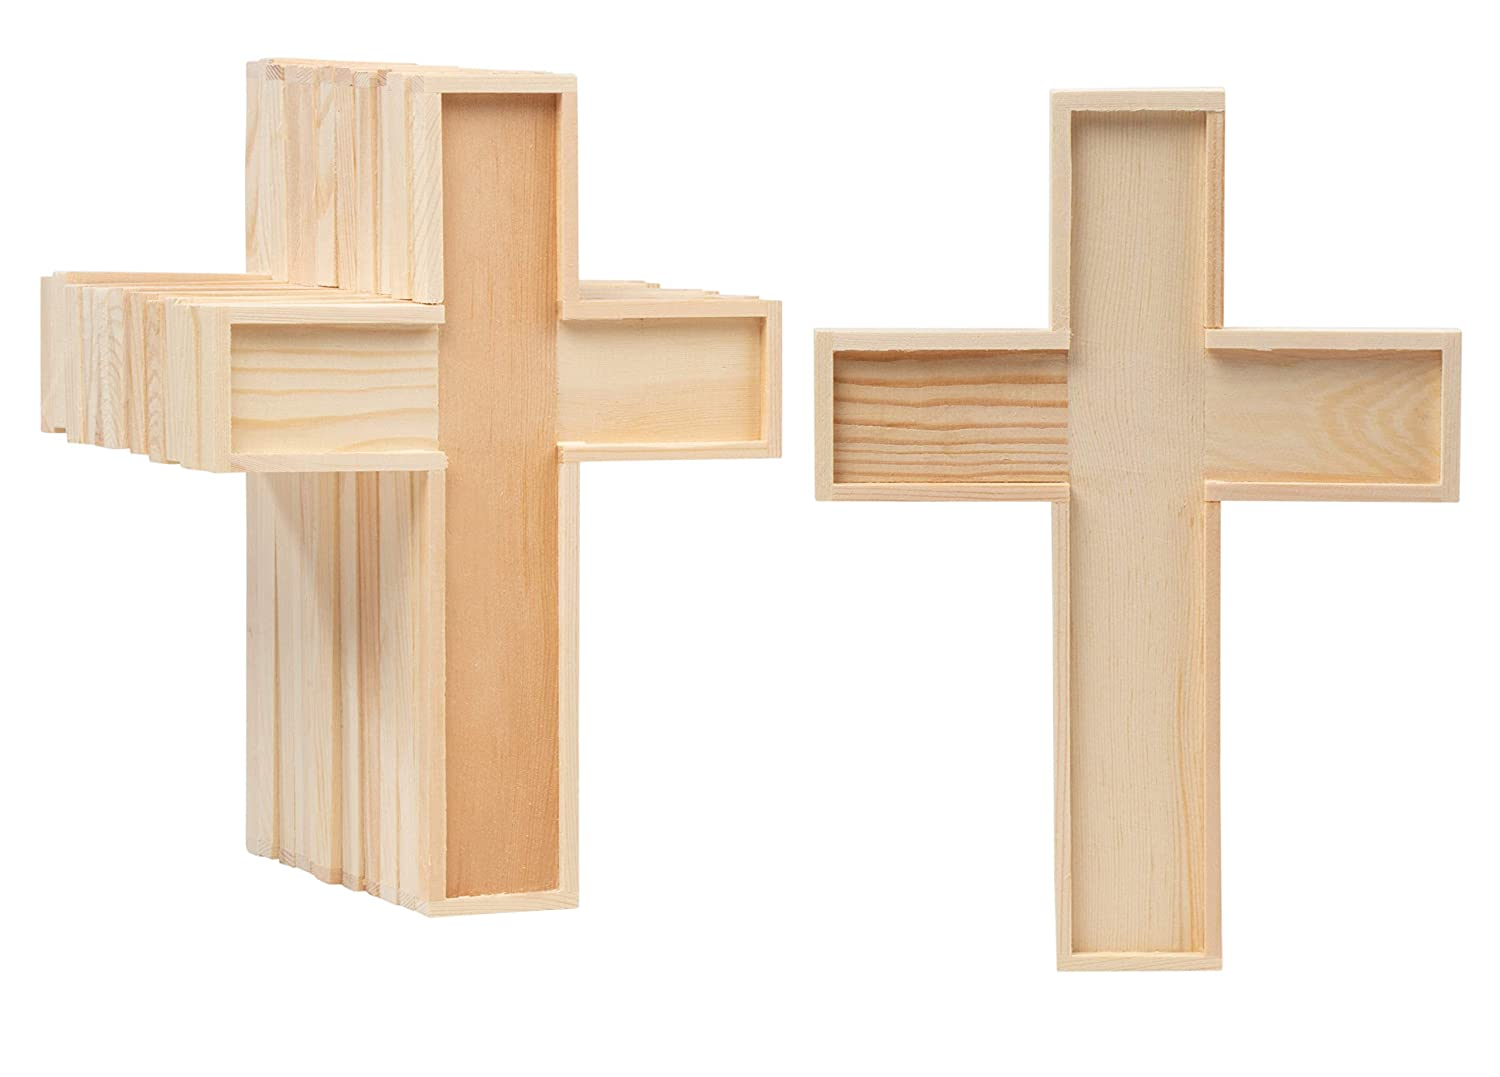 Unfinished Wood Cutout 12 Pack Wooden Cross Wood Pieces Wood Shapes For Wooden Craft Diy Projects Sunday School Church Home Wall Decoration